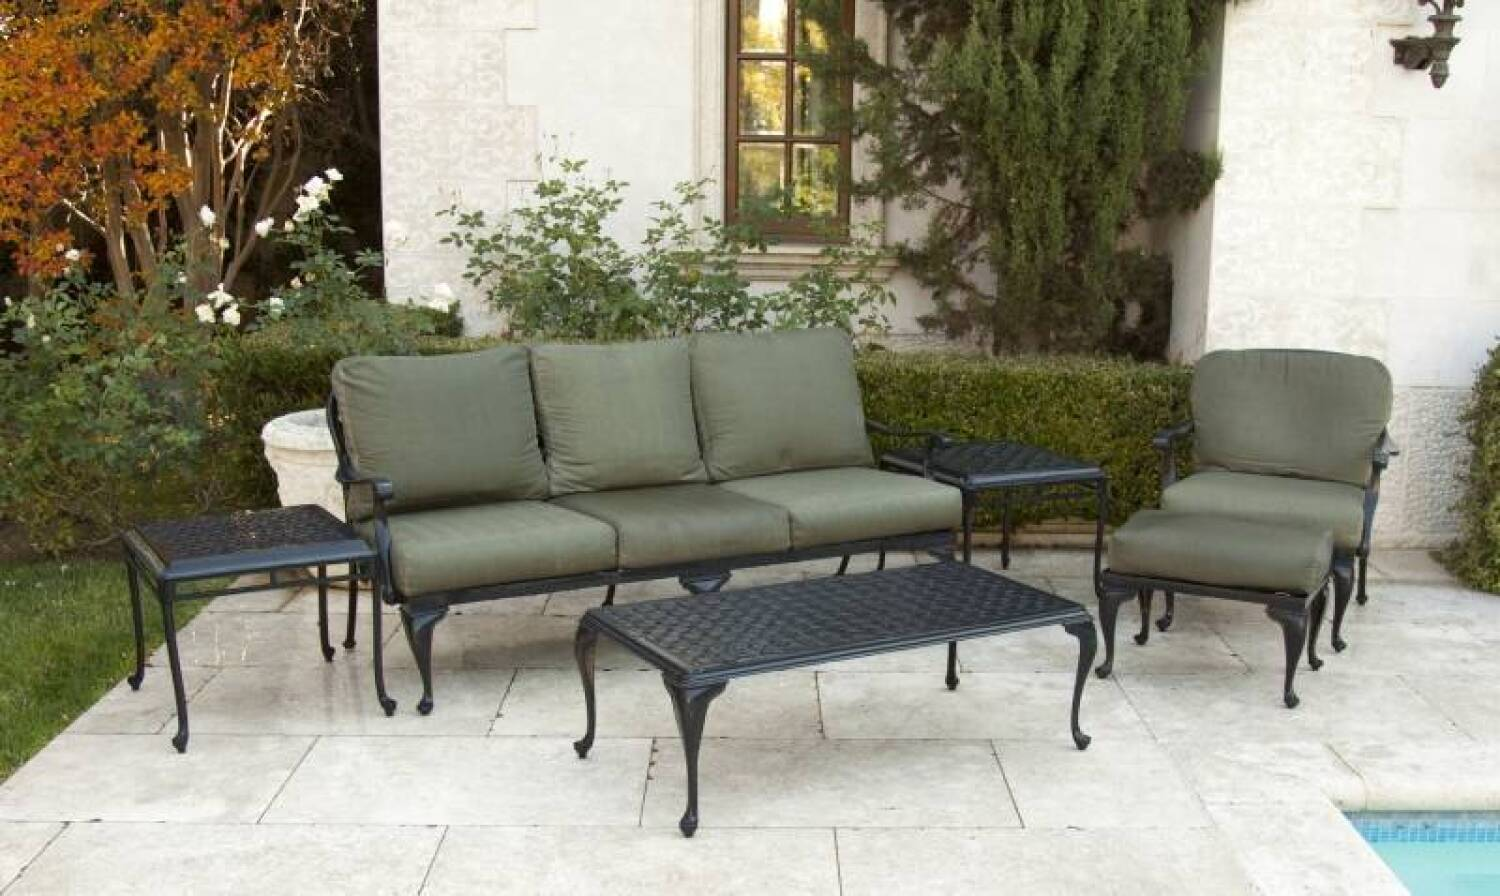 Group Of Smith And Hawken Patio Furniture Current Price 650